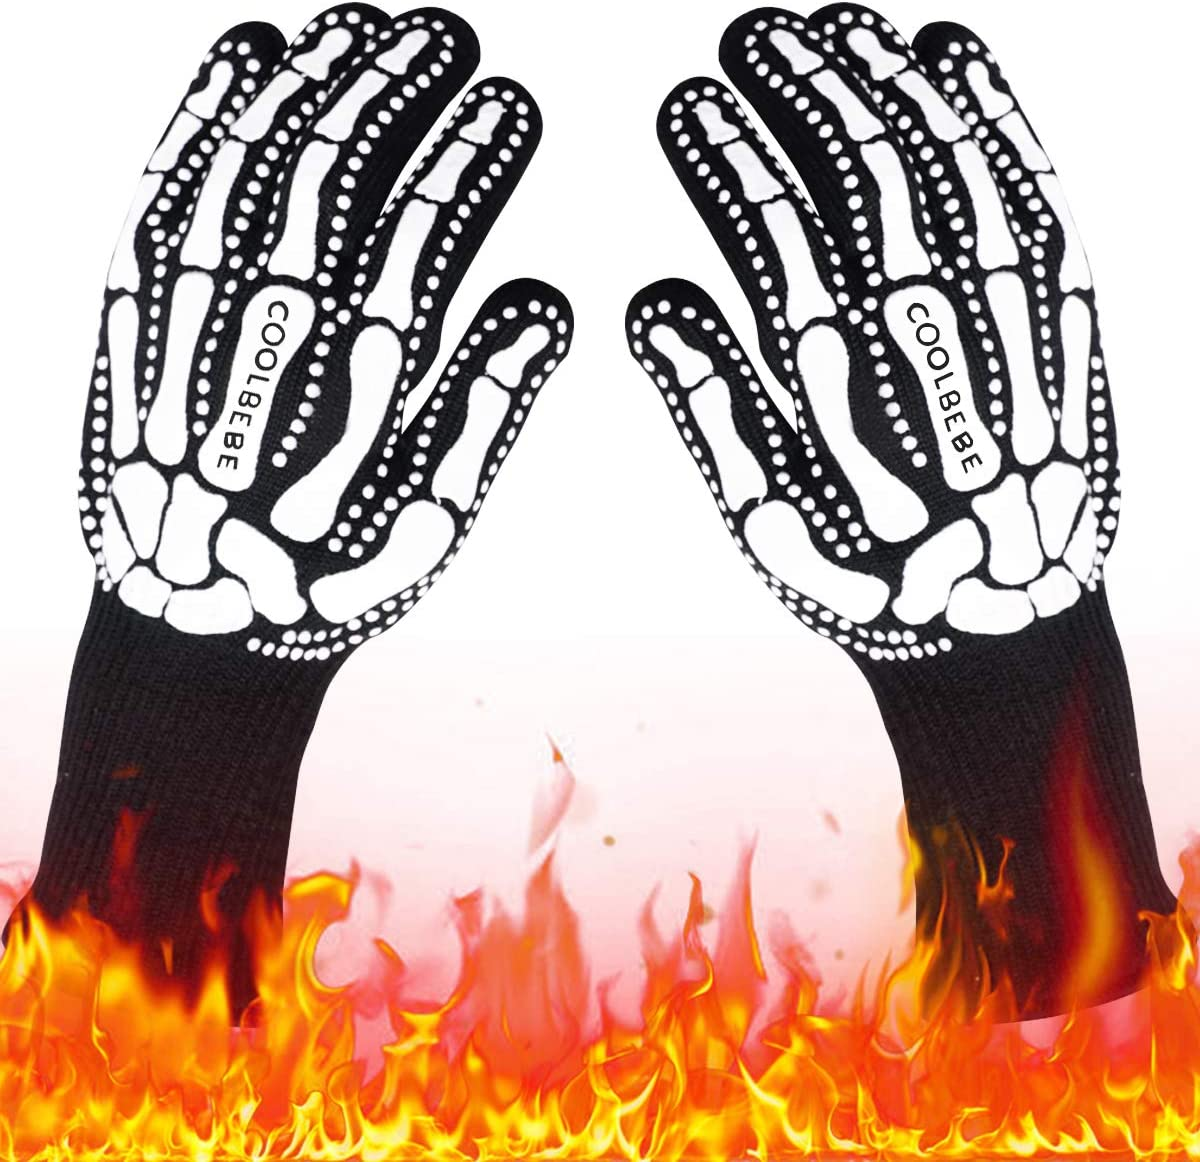 Black Skeleton BBQ Grill Gloves, COOLBEBE Unisex Cooking Oven Barbecue Gloves Kitchen Mitts with Skull Pattern - 1472°F Extreme Heat Resistant, Durable & Light Weight - 1 Pair : Garden & Outdoor